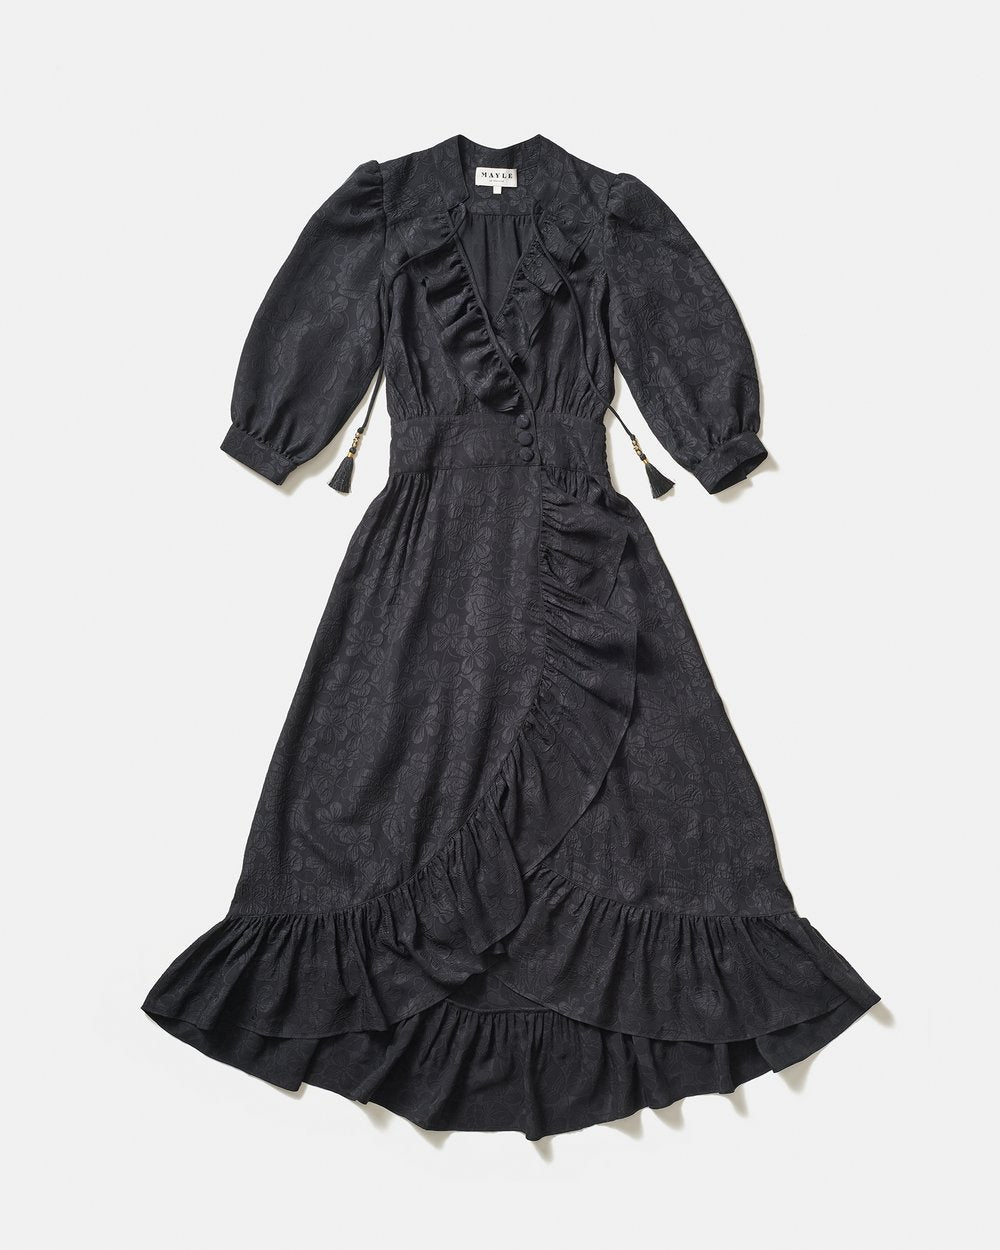 PALMA DRESS - BLACK JACQUARD